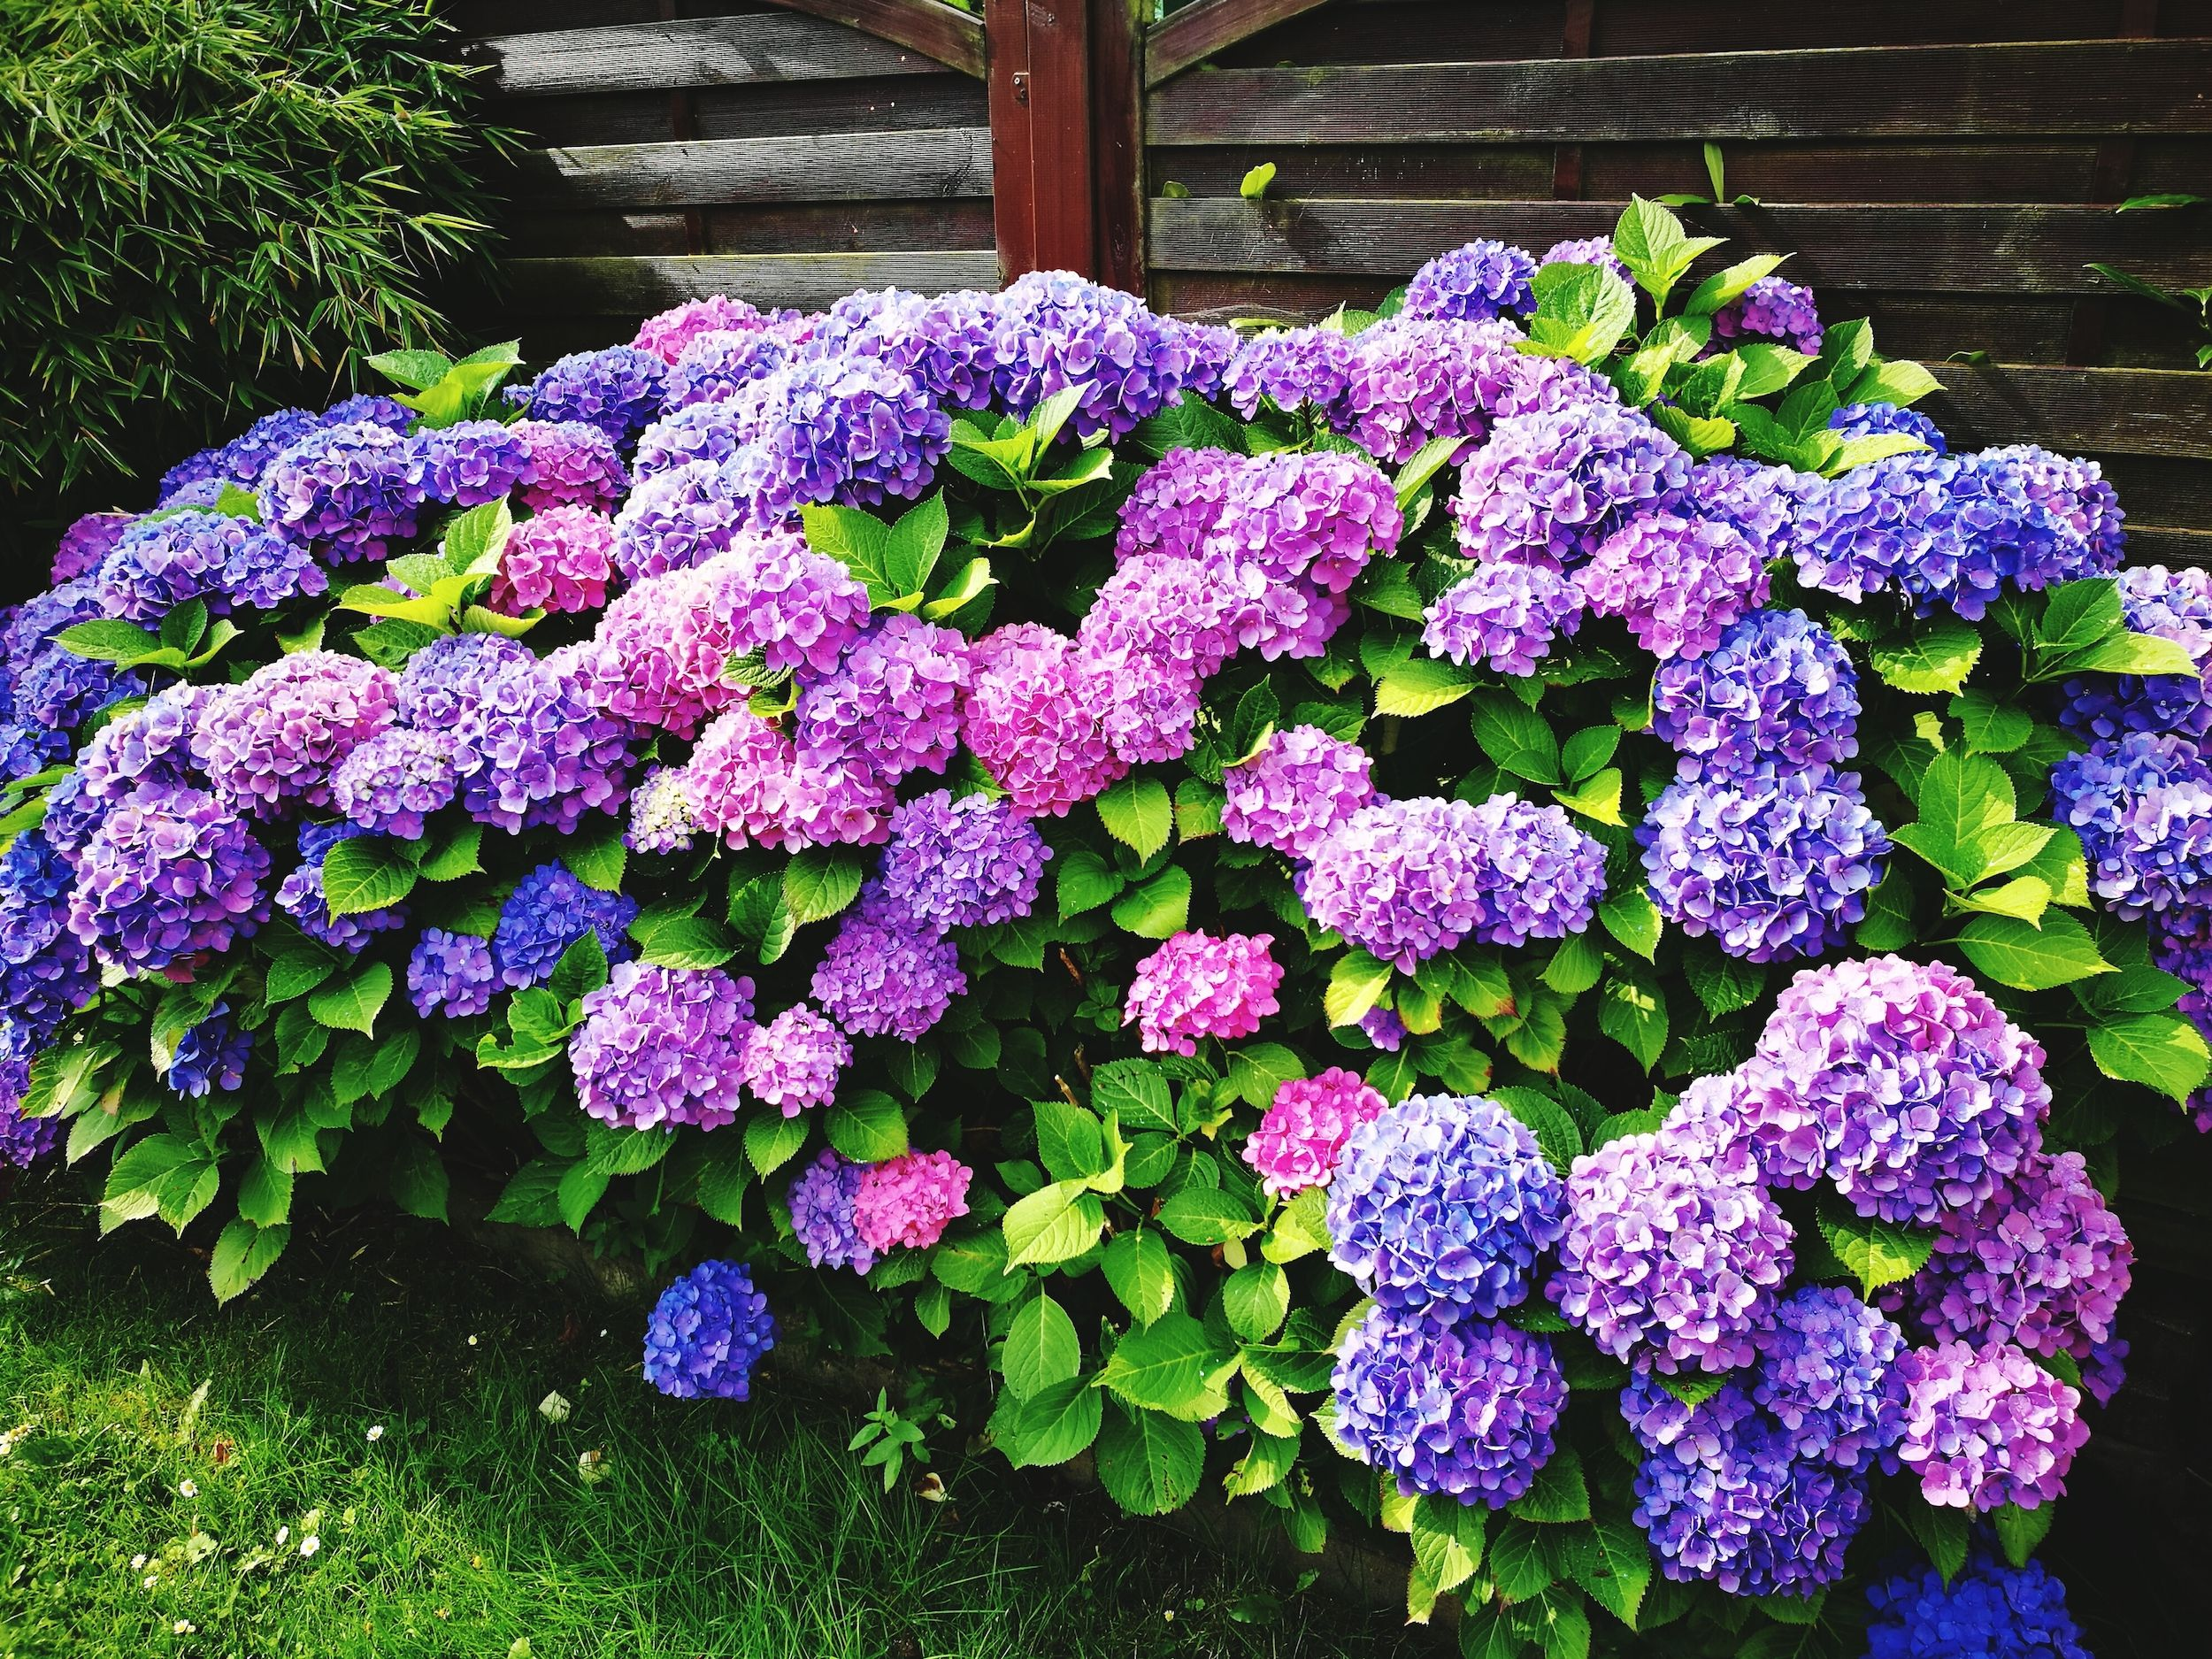 You Can Change the Color of Your Hydrangeas with This Simple Trick